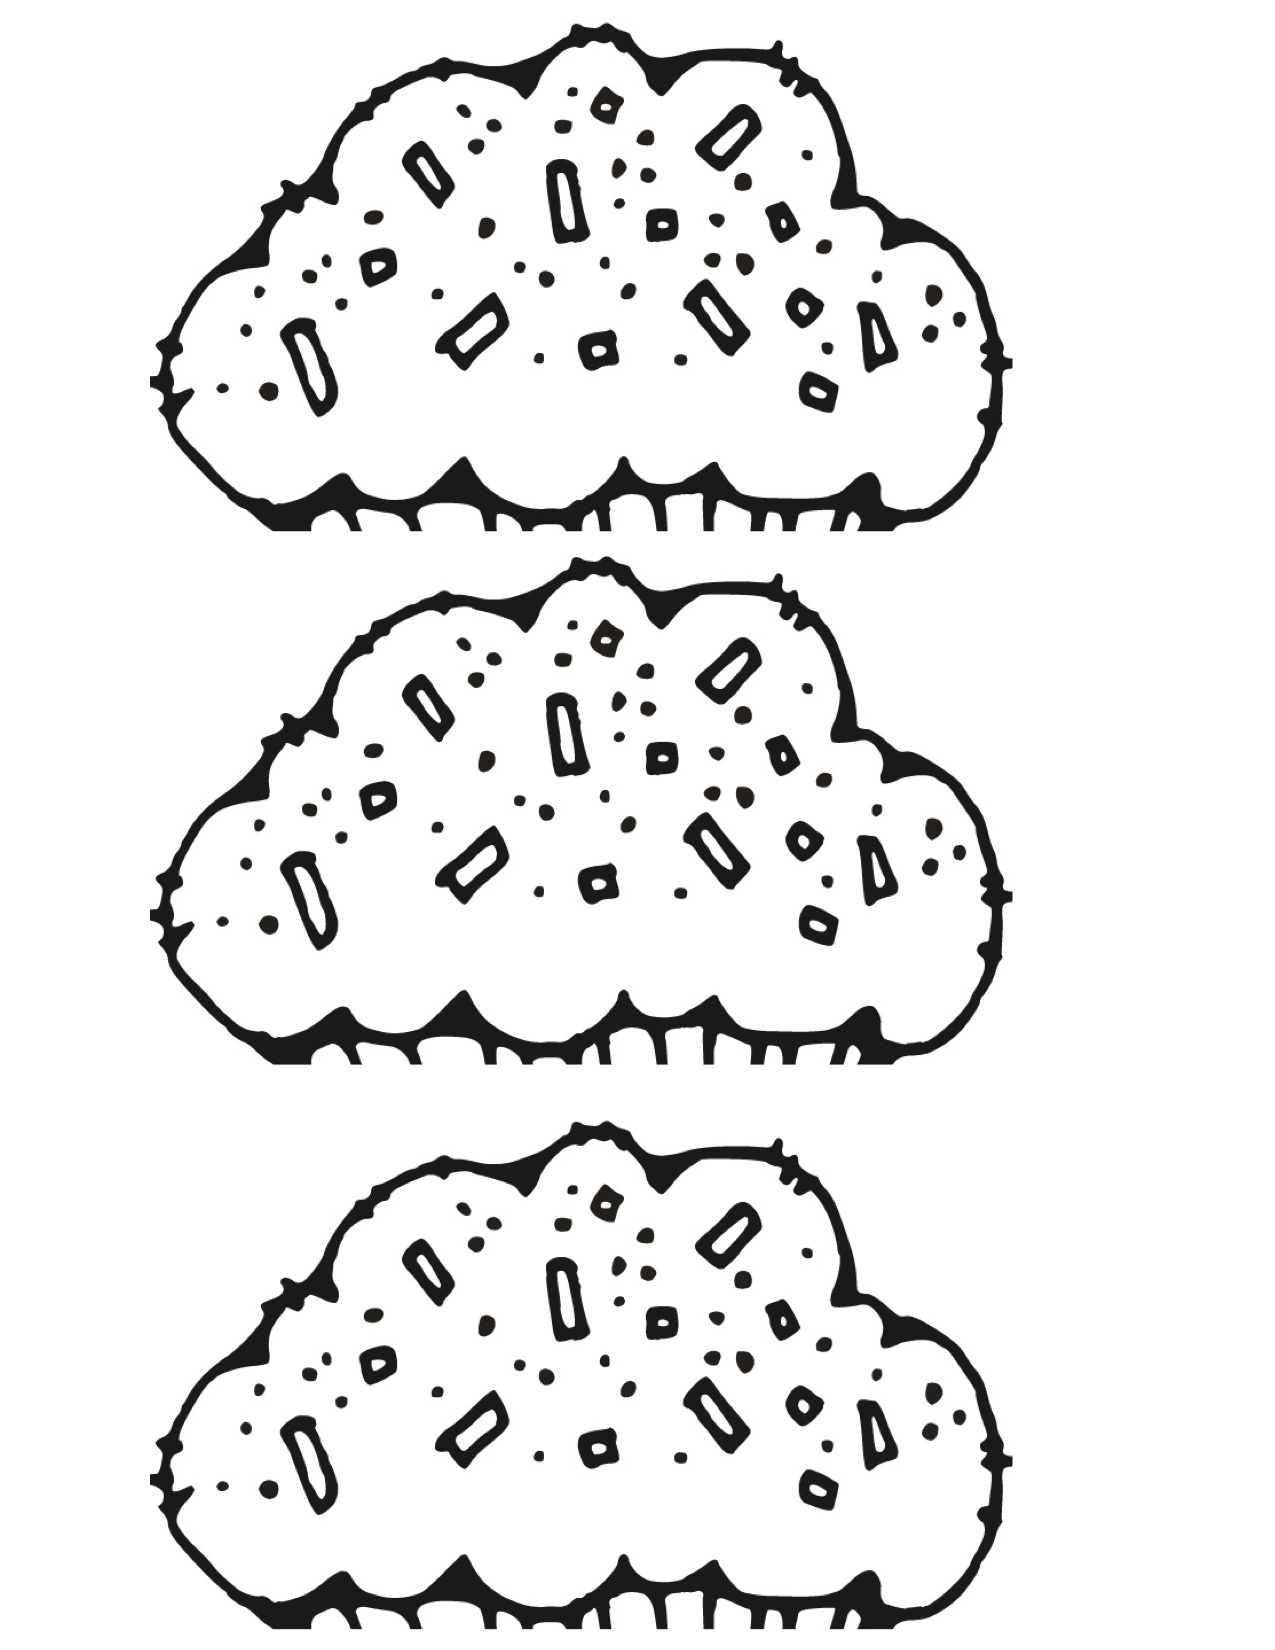 Frosting clipart black and white Owen ran frosting scrapbook by